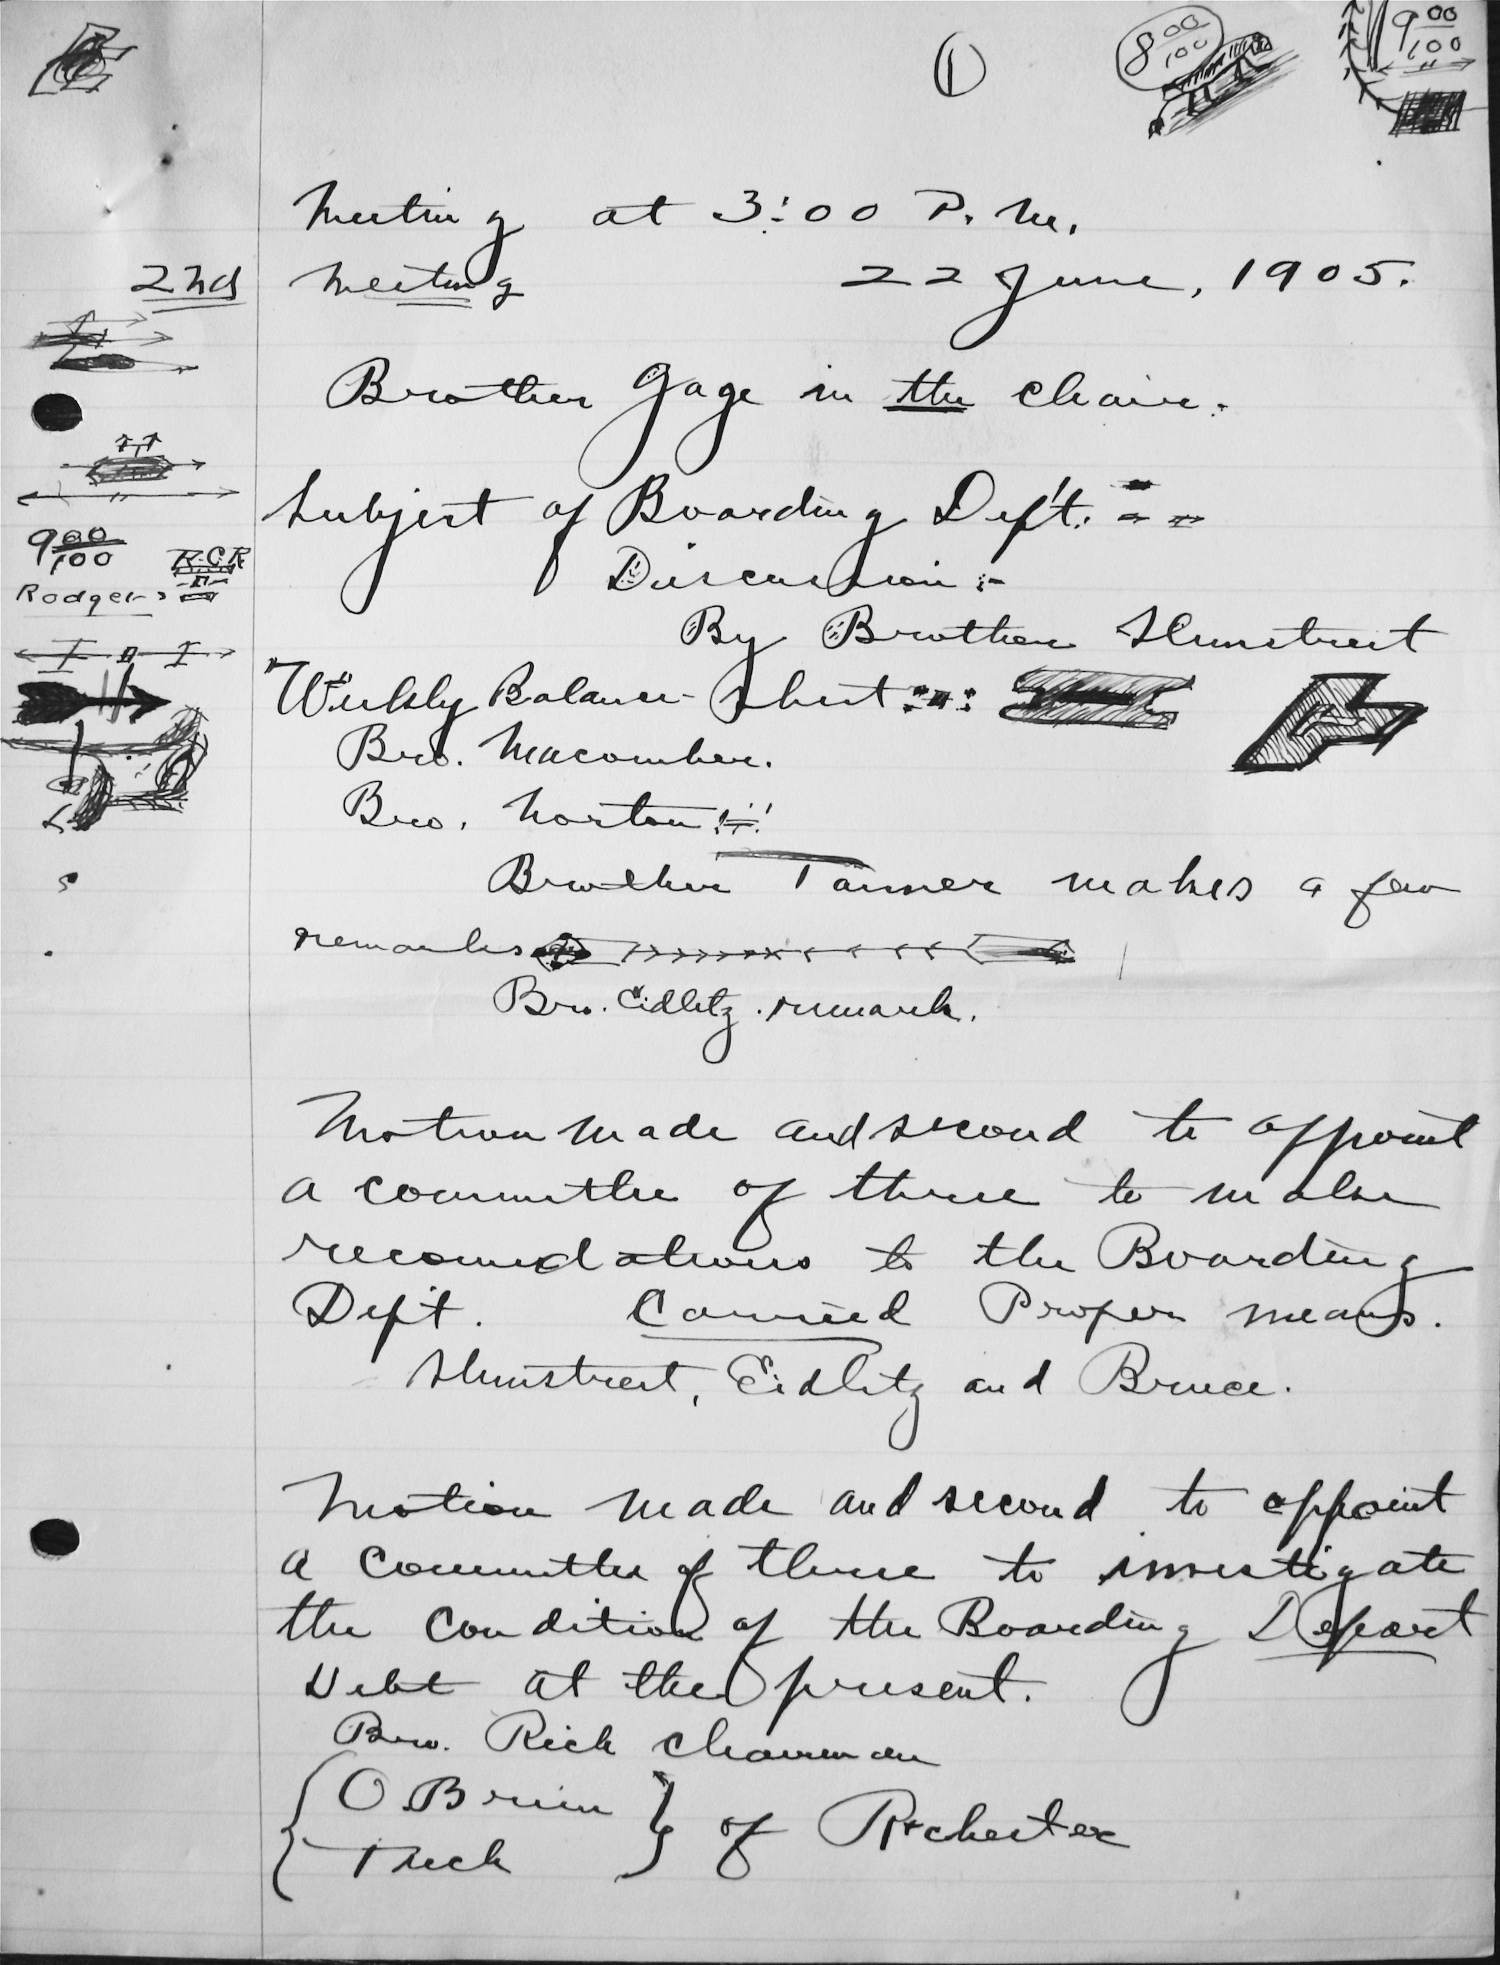 Minutes of CHapter Meeting 1905